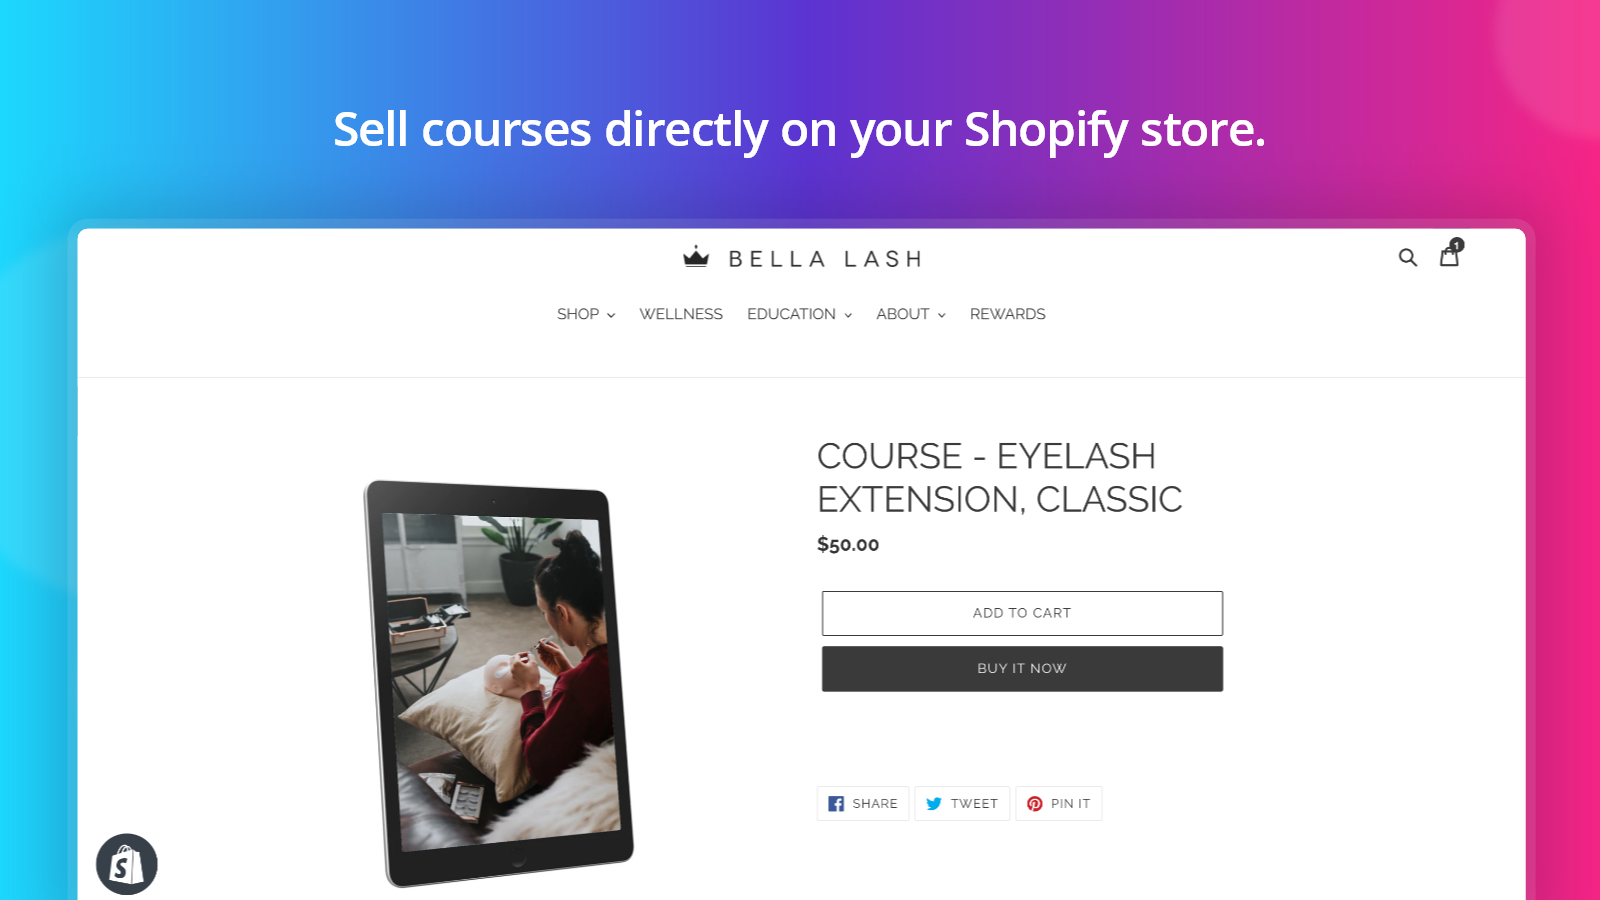 Sell courses directly on your Shopify store.